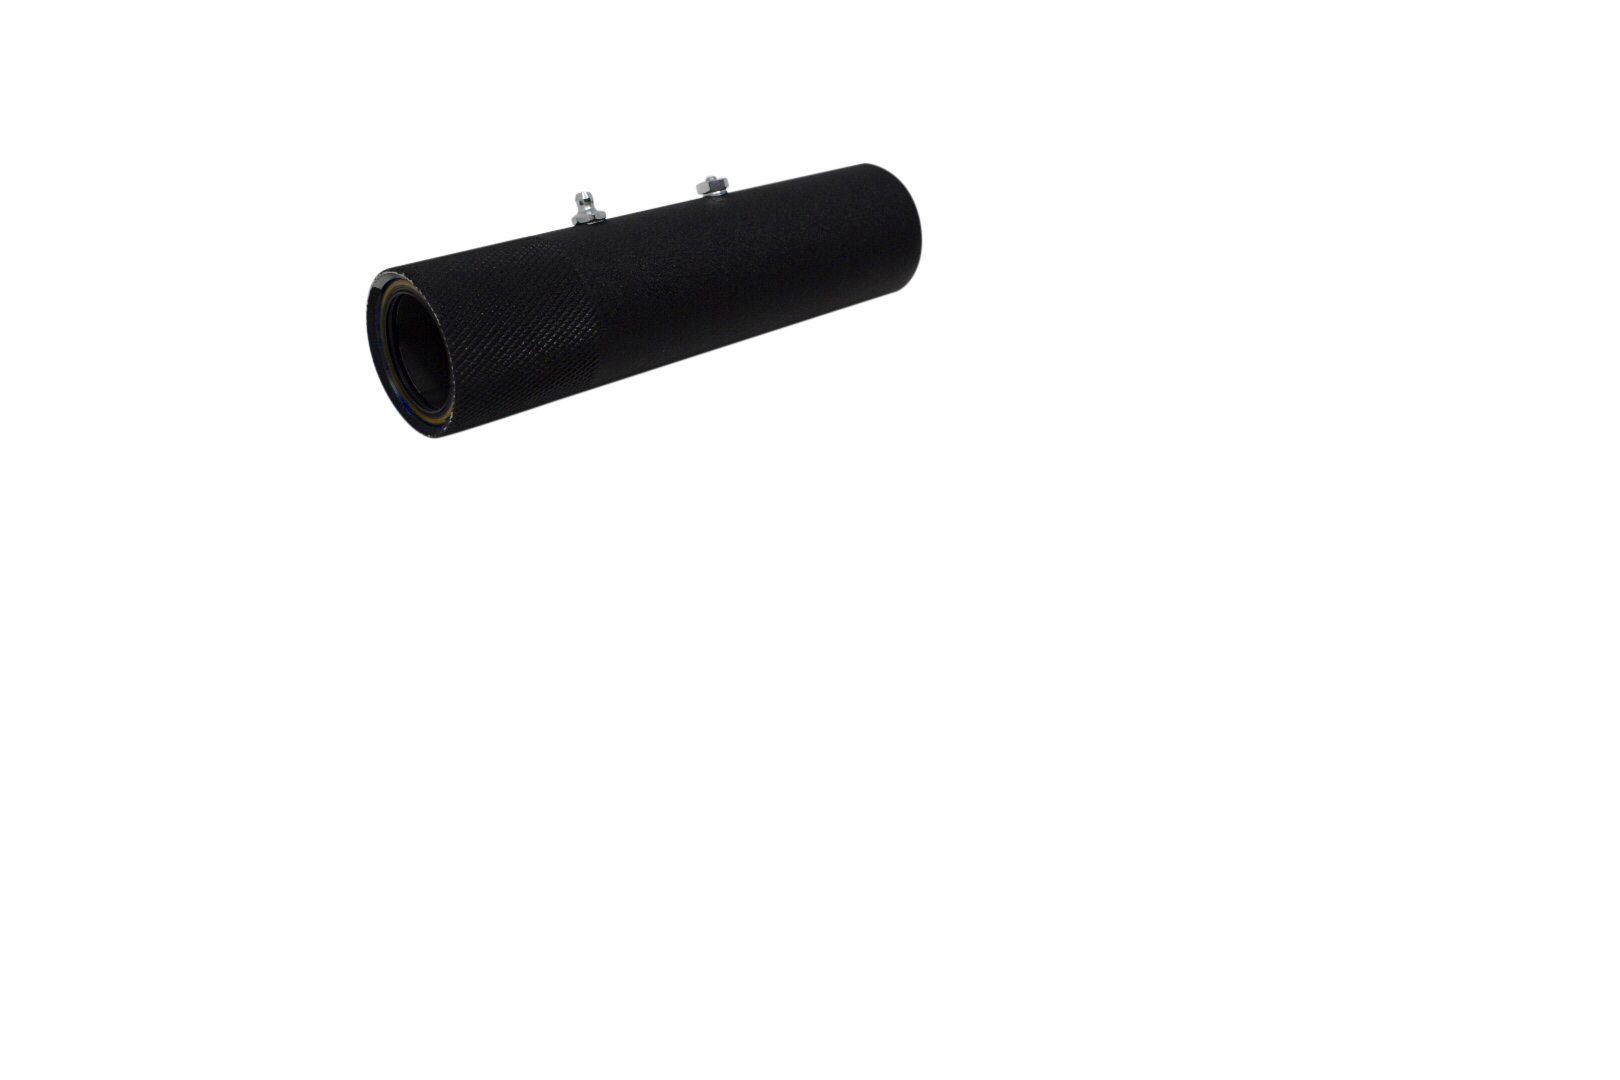 Cam Tube c0311a-tube: extreme cam enclosure tube only (no s-cam included)